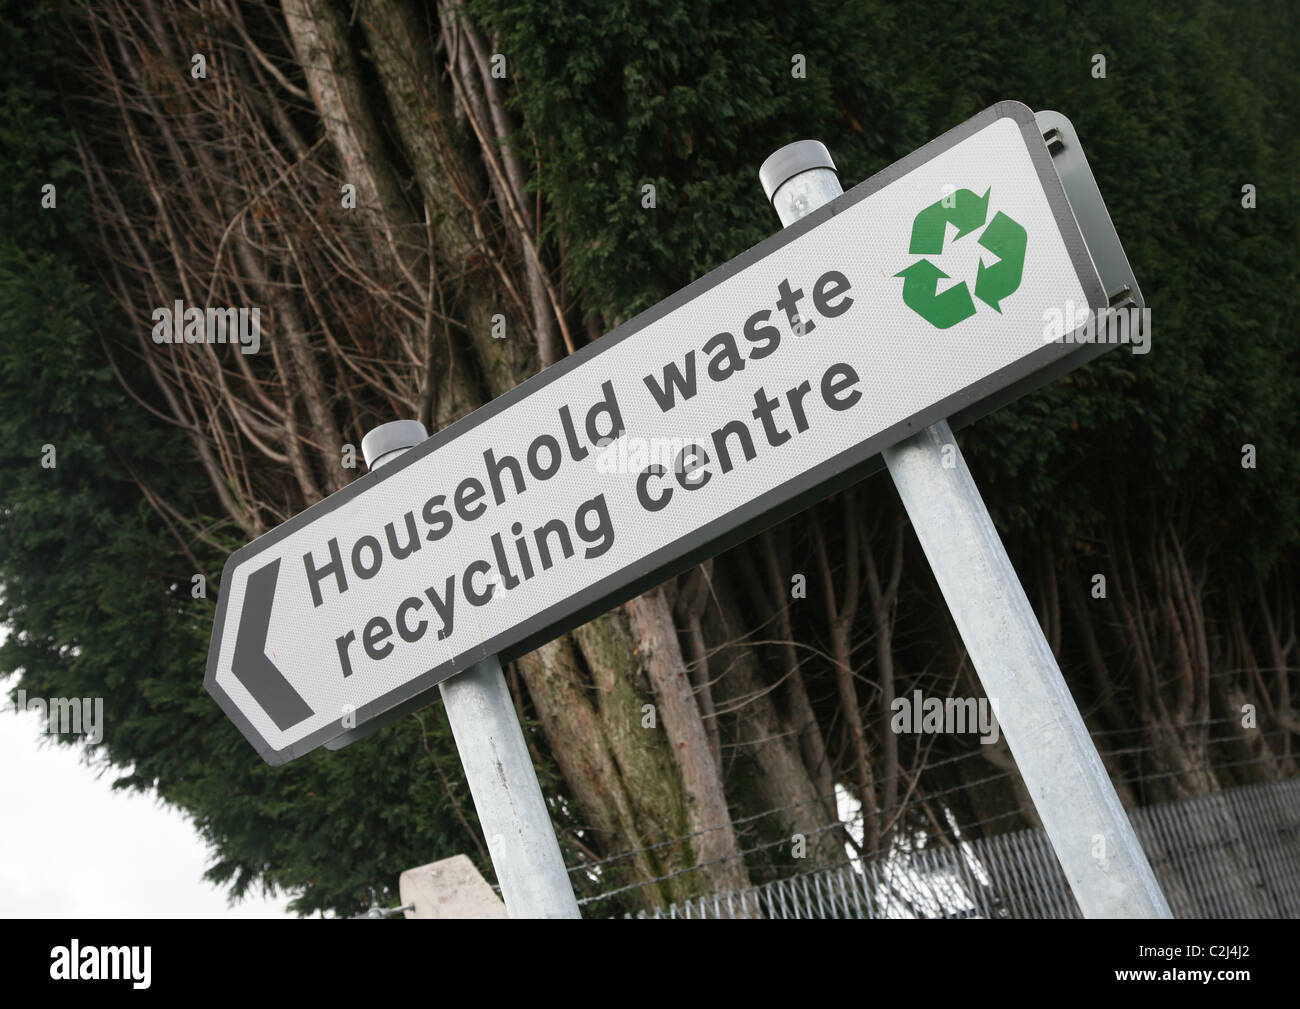 A sign showing a Household waste recycling centre - Stock Image